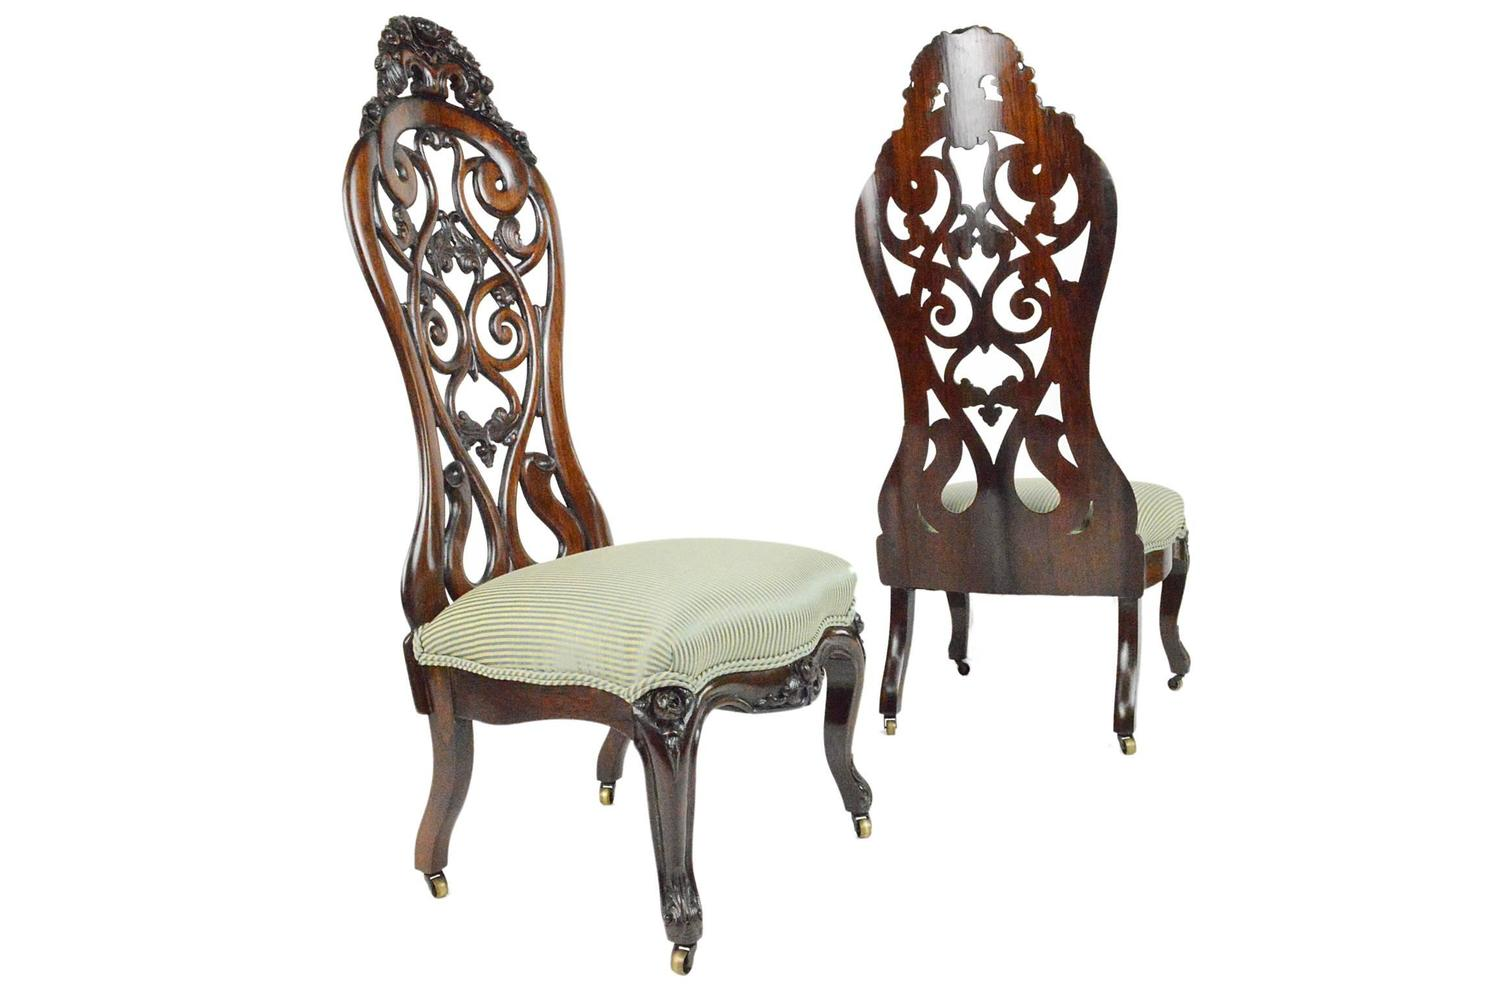 Pair Of Rococo Revival Rosewood Slipper Chairs In The Rosalie Pattern